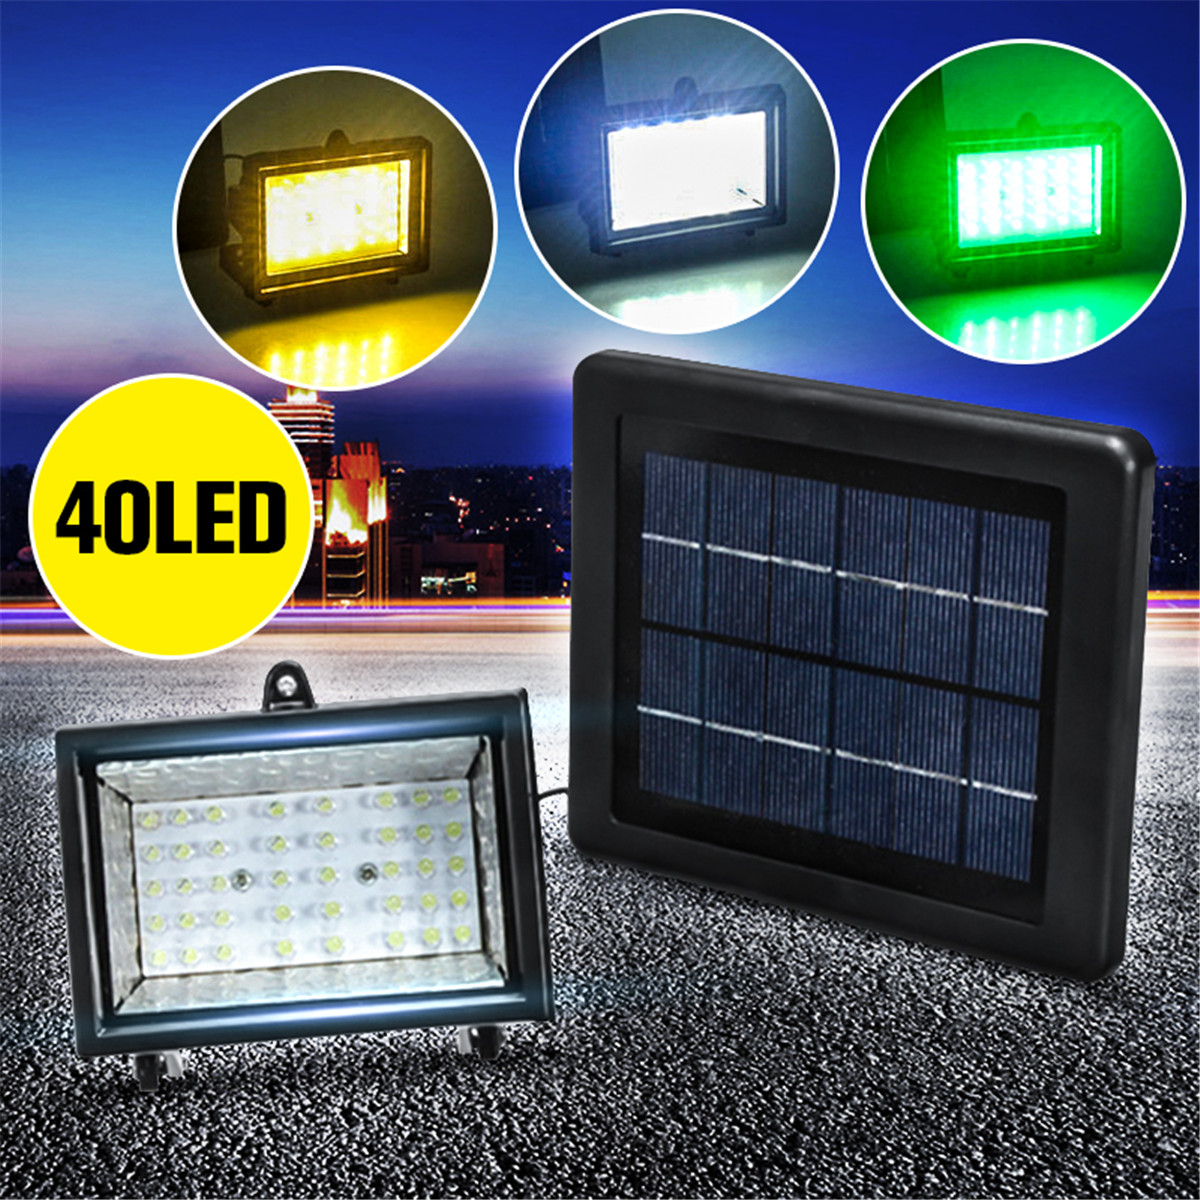 40 led waterproof solar power ultra bright spotlight garden lawn yard flood lightwhite